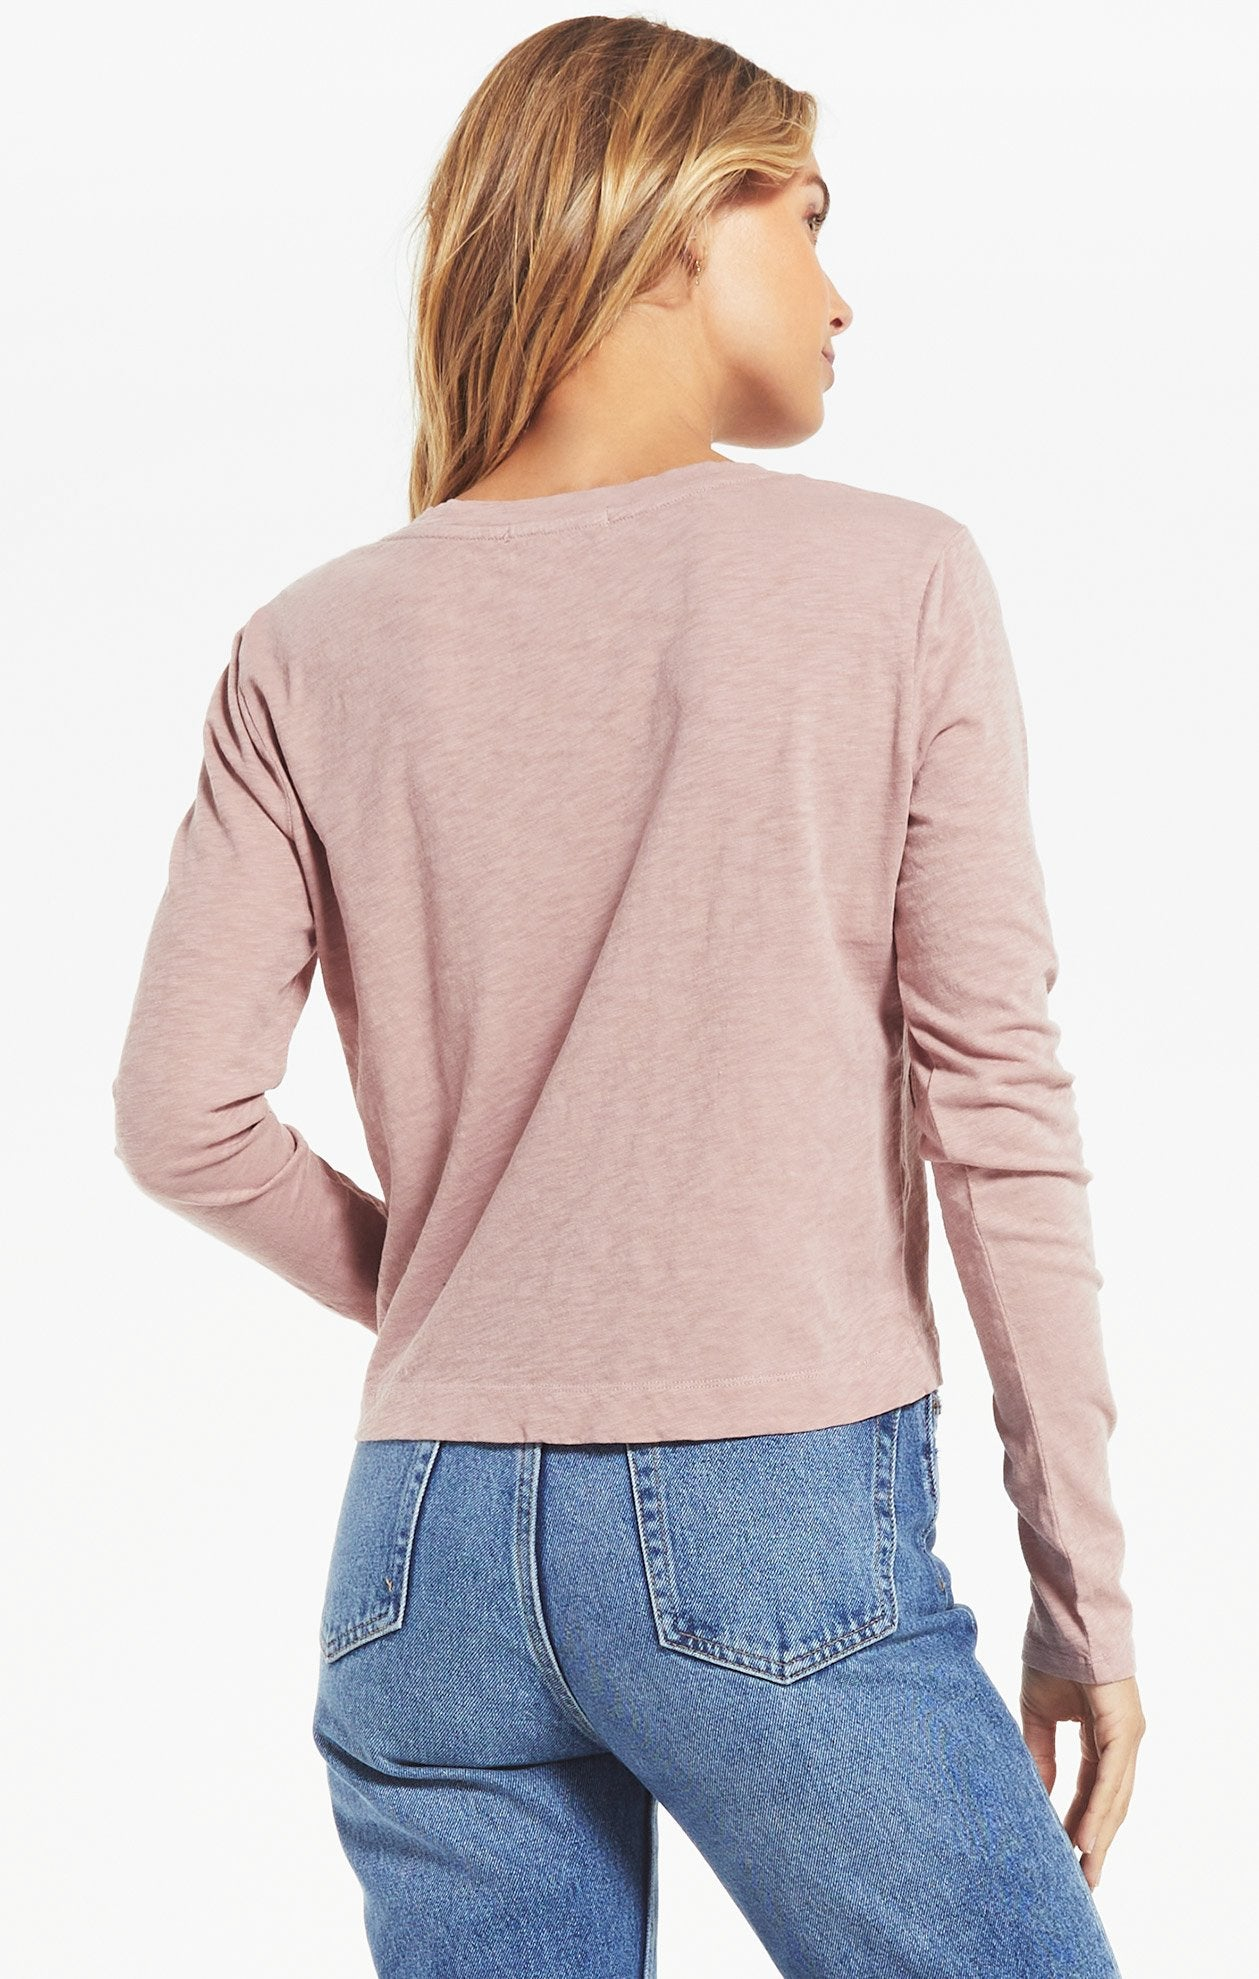 MINA SLUB TOP - Penny Lane Boutique